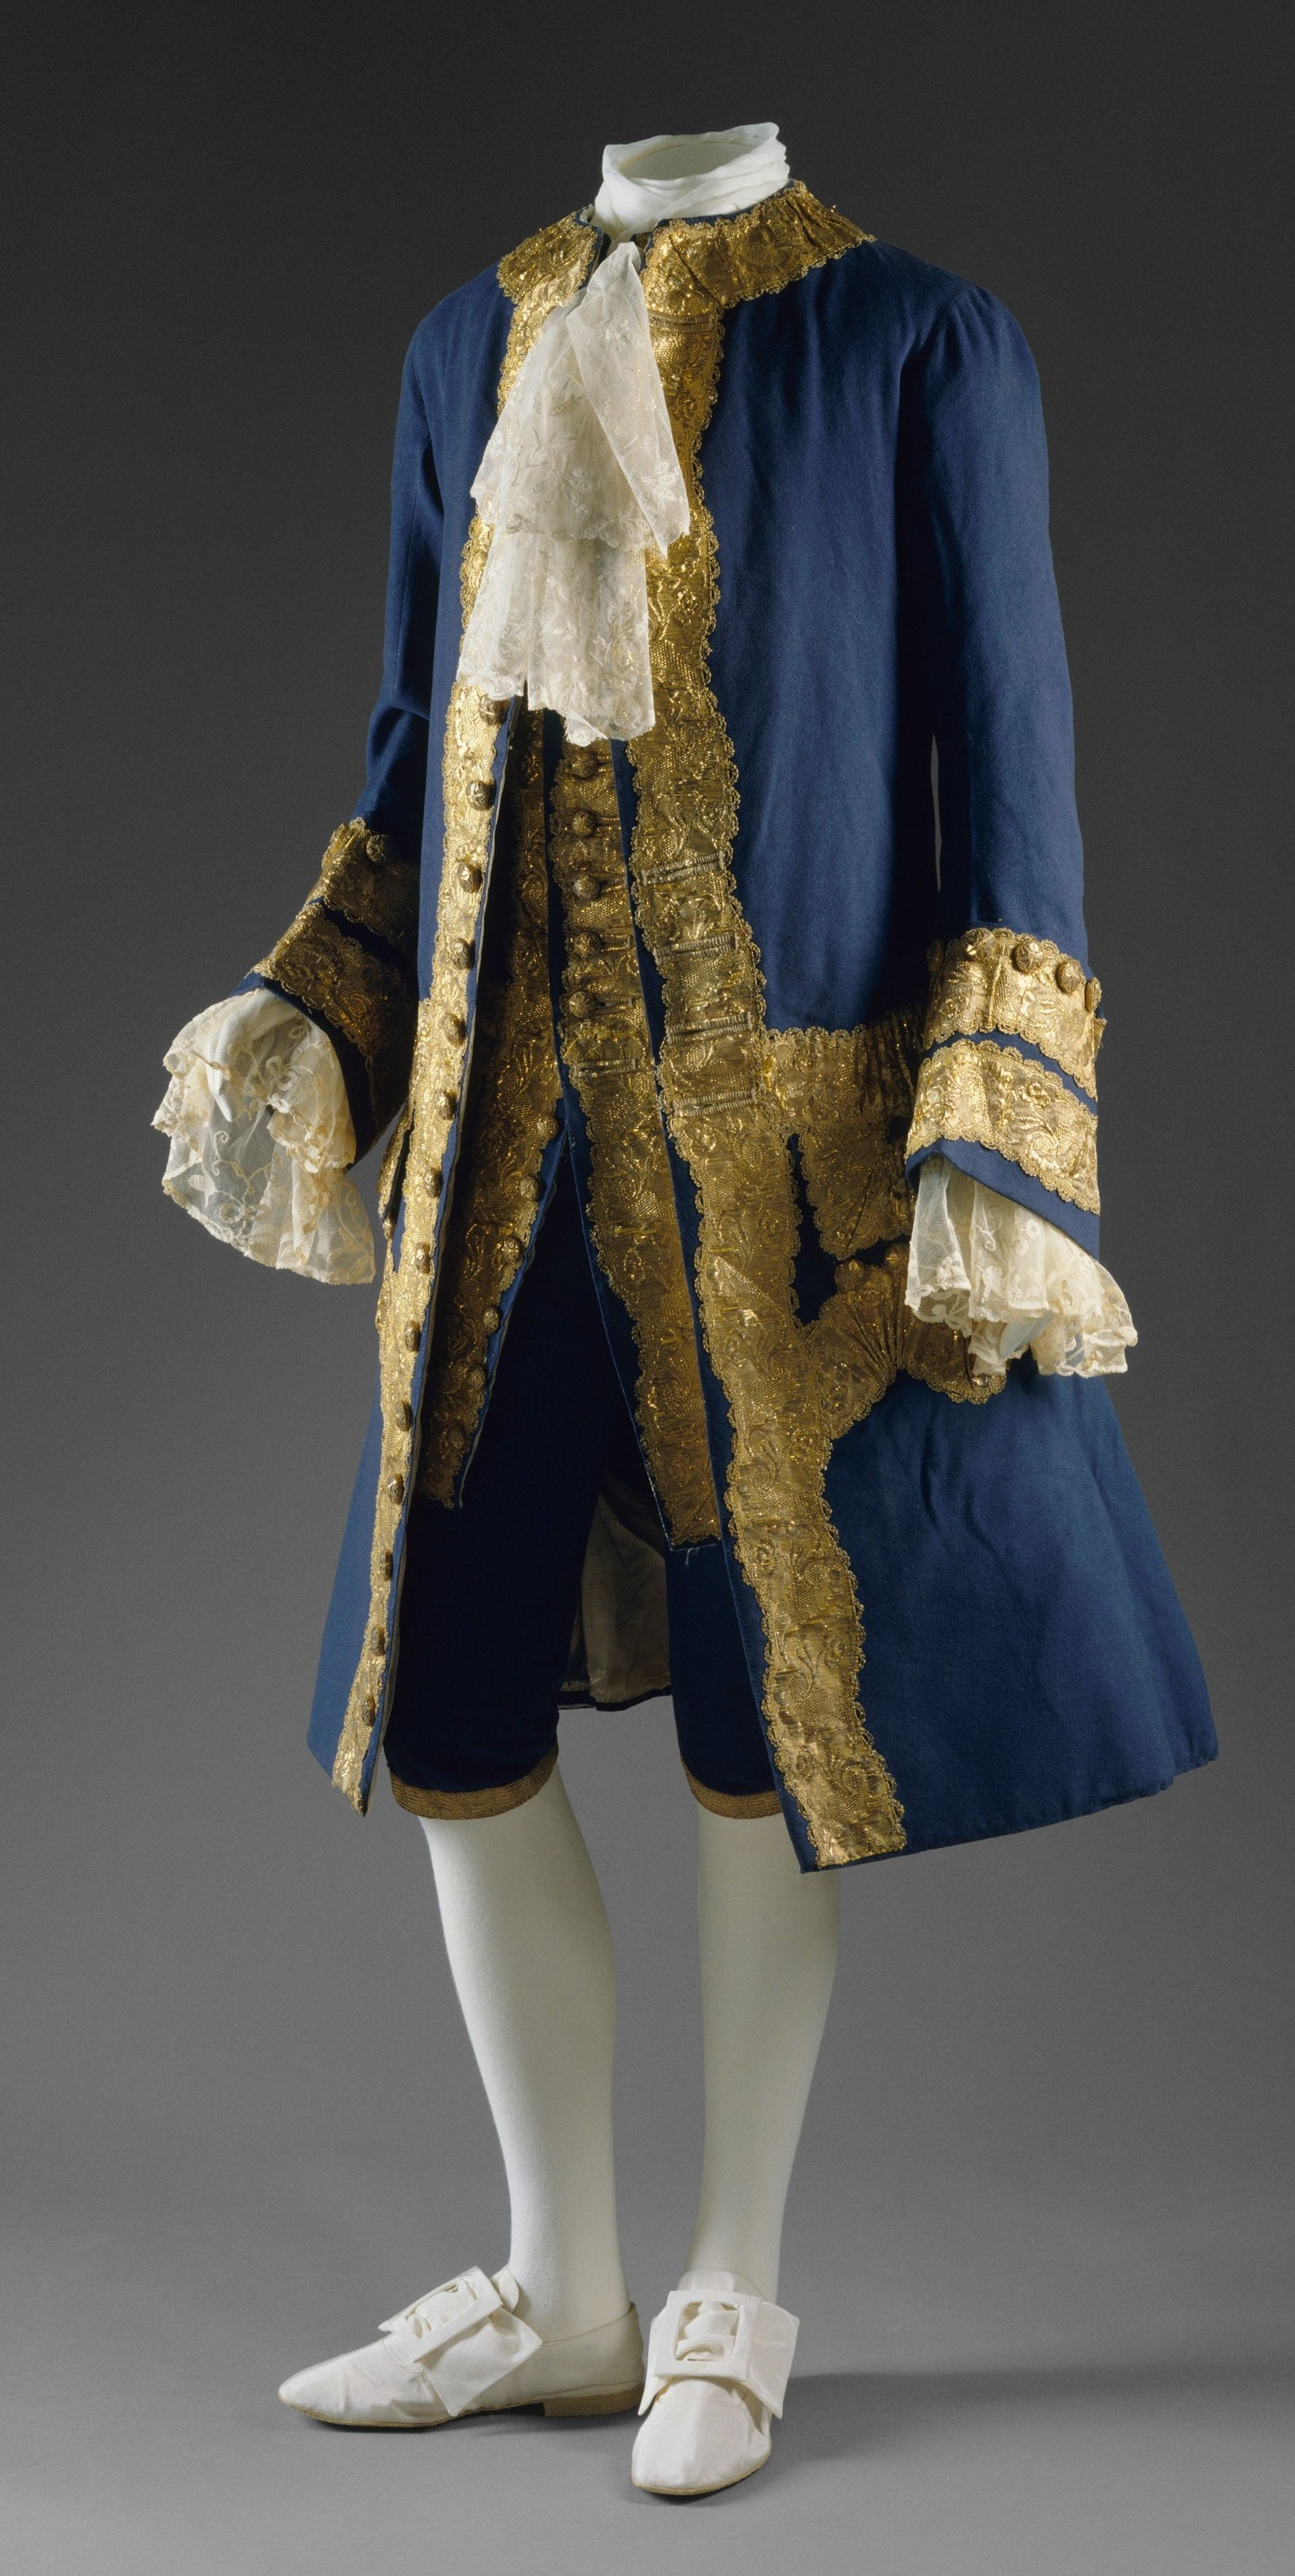 french revolution fashion aristocratic finery typical in europe french revolution fashion aristocratic finery typical in europe prior to the french revolution